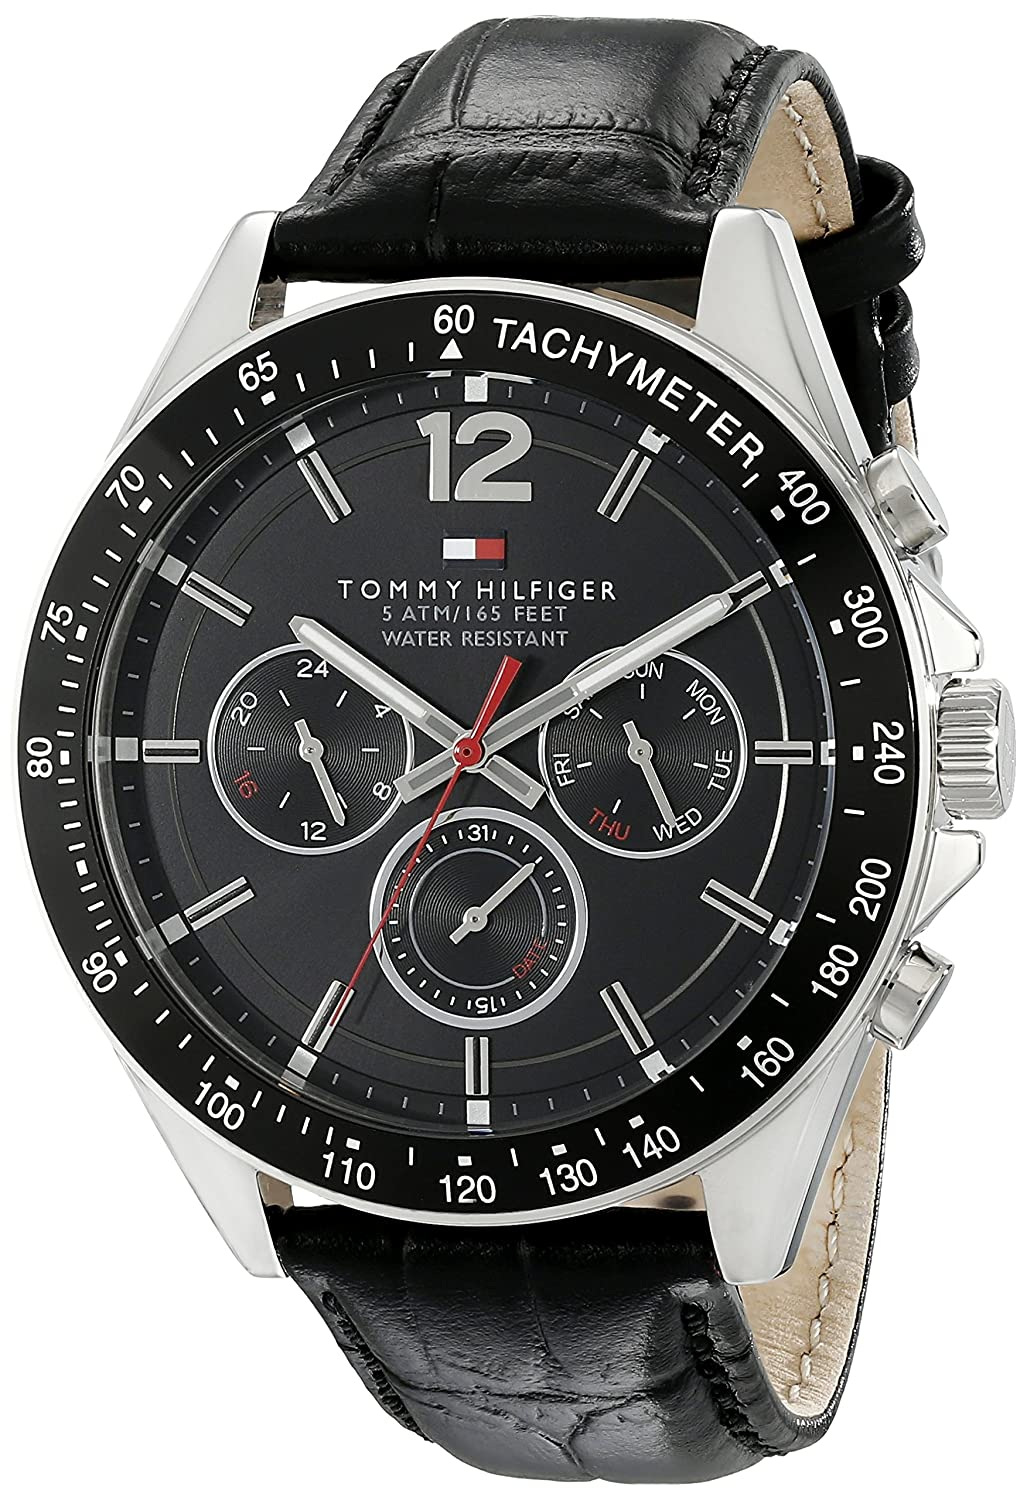 85d7ccdcf Amazon.com: Tommy Hilfiger Men's 1791117 Sophisticated Sport Watch With Black  Leather Band: Tommy Hilfiger: Watches